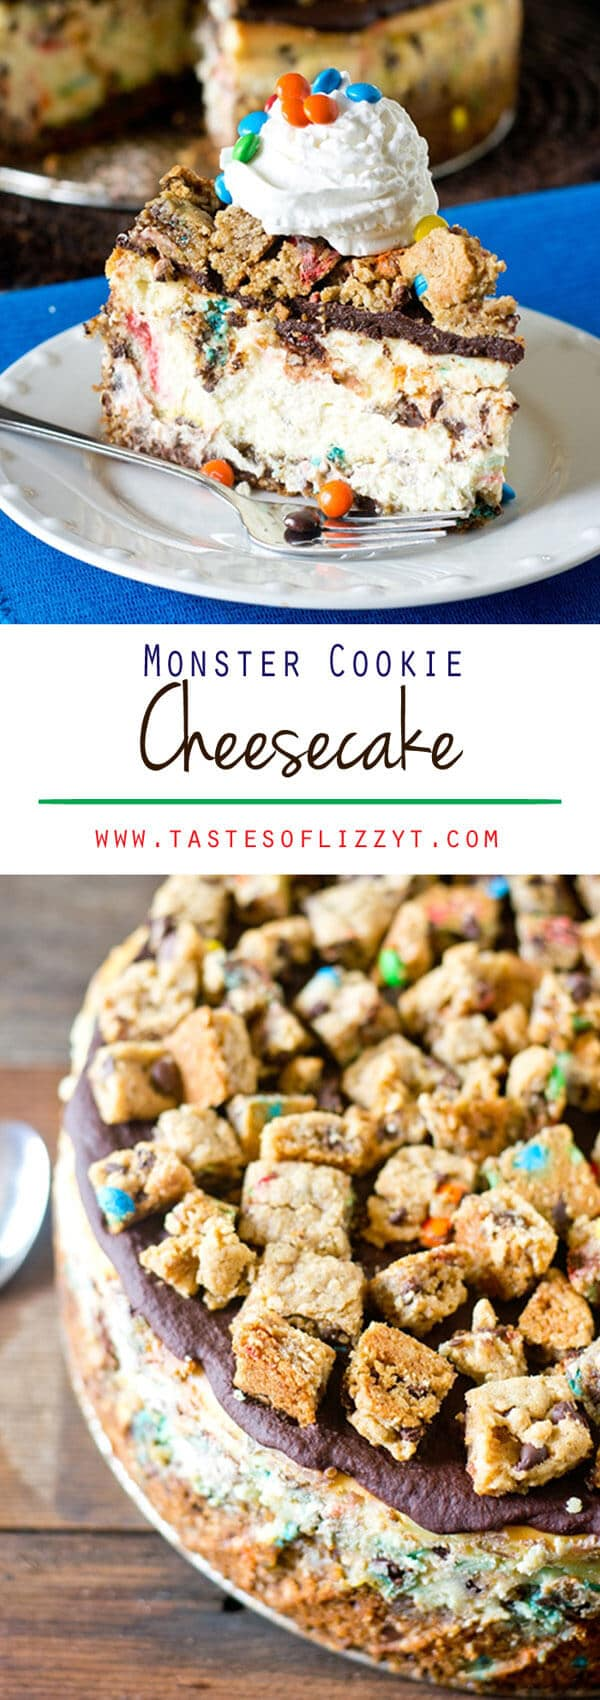 Your favorite cookie meets creamy cheesecake! This Monster Cookie Cheesecake will be a hit with cookie and cheesecake lovers alike. Monster Cookie Cheesecake Recipe { Homemade M&M Monster Cookies}